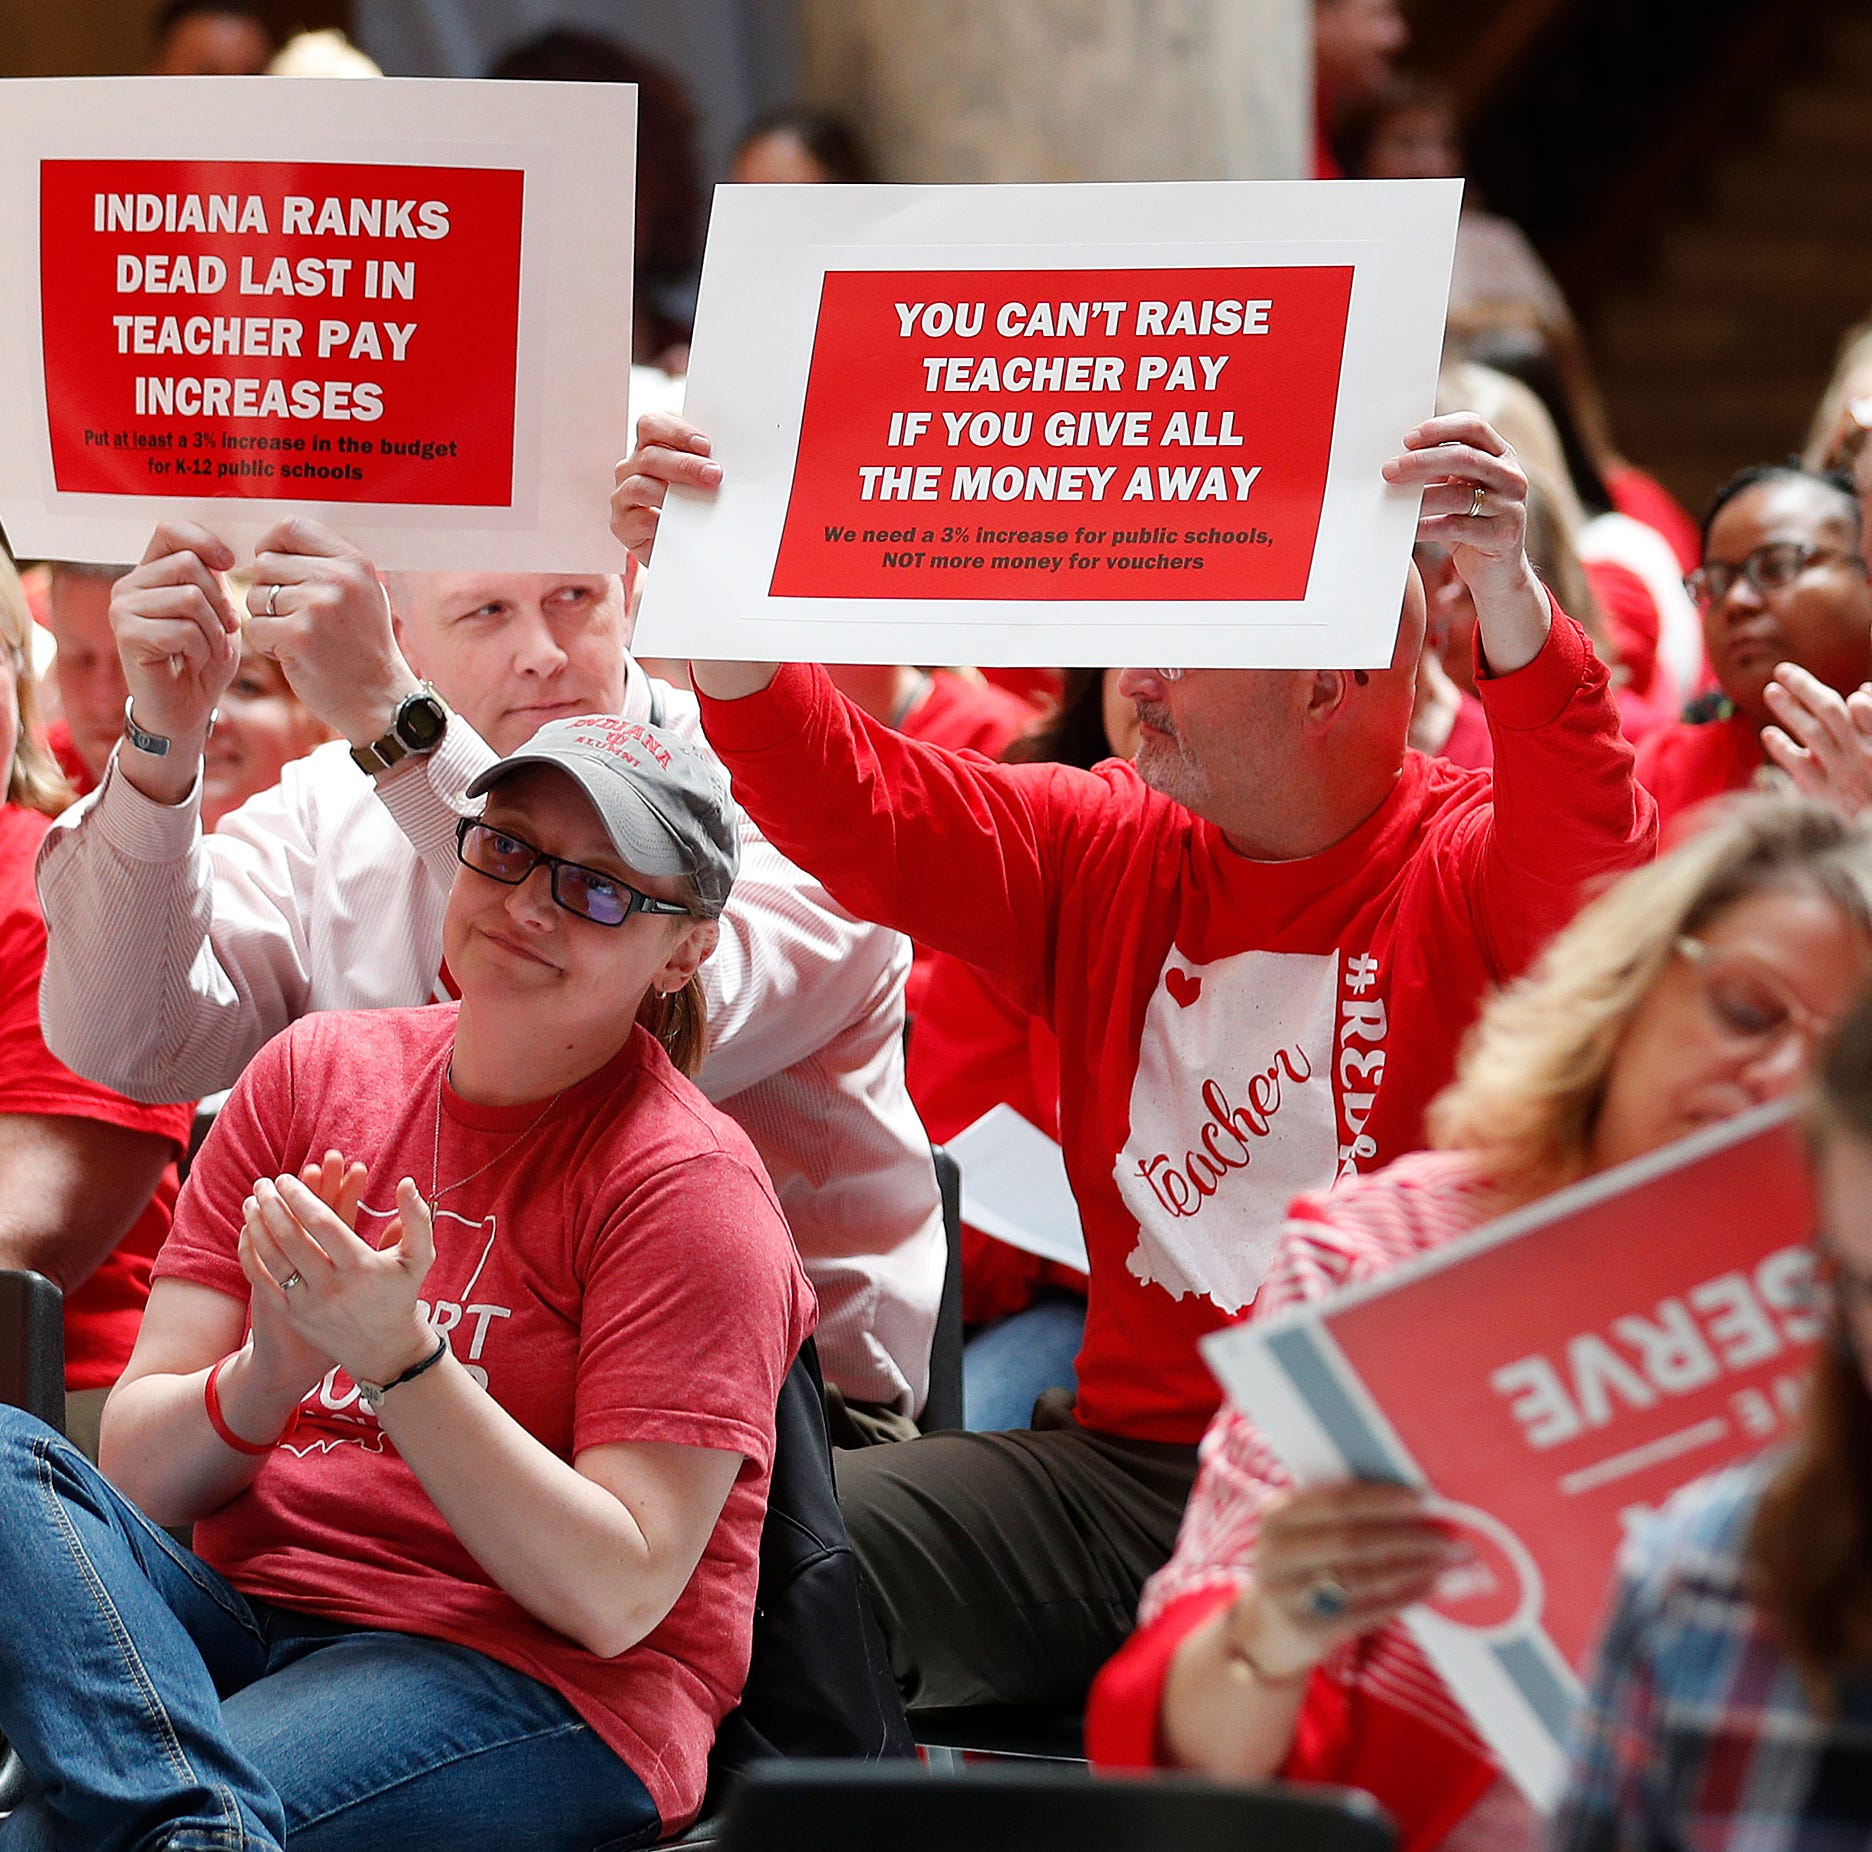 'I'm ready to walk': Teachers looking to lawmakers for last-minute movement on pay, funding